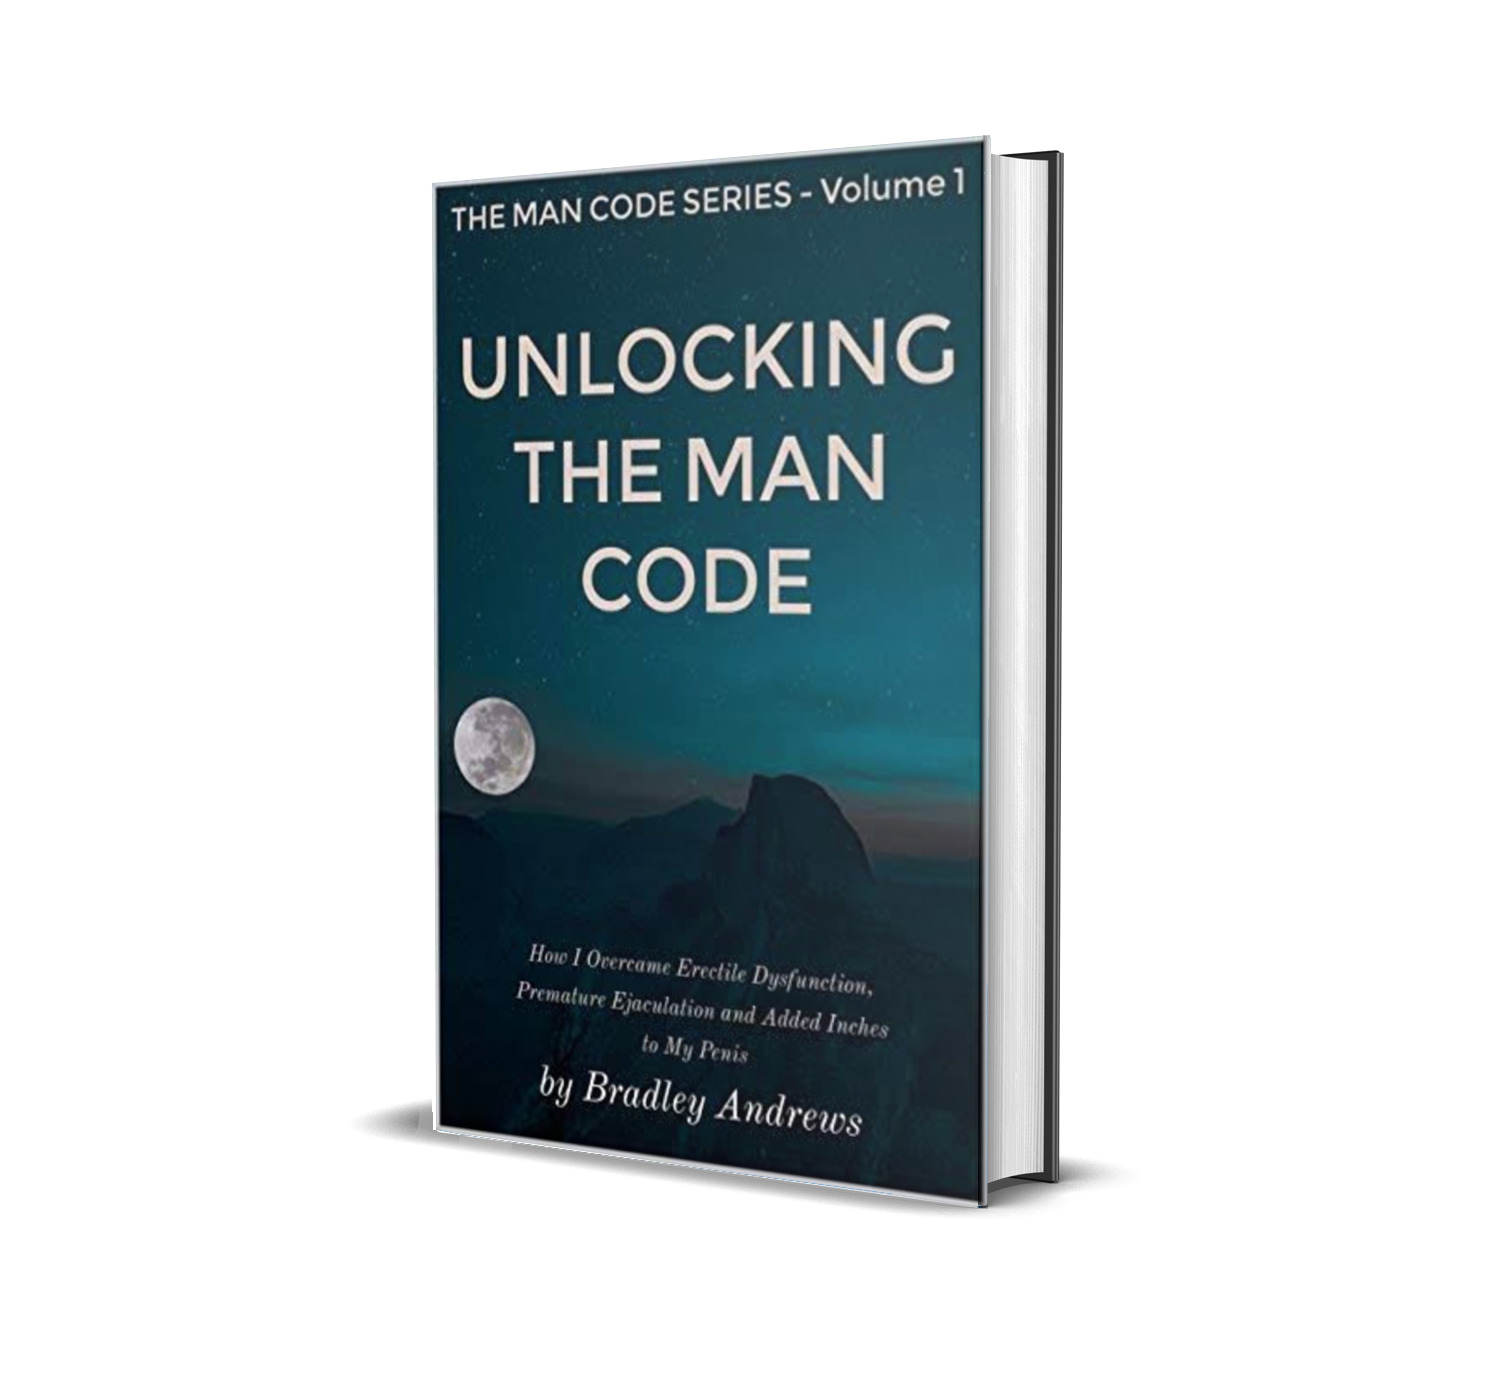 Unlocking the Man Code: How I Overcame Erectile Dysfunction, Premature Ejaculation and Added Inches to My Penis- Bradley Andrewsd